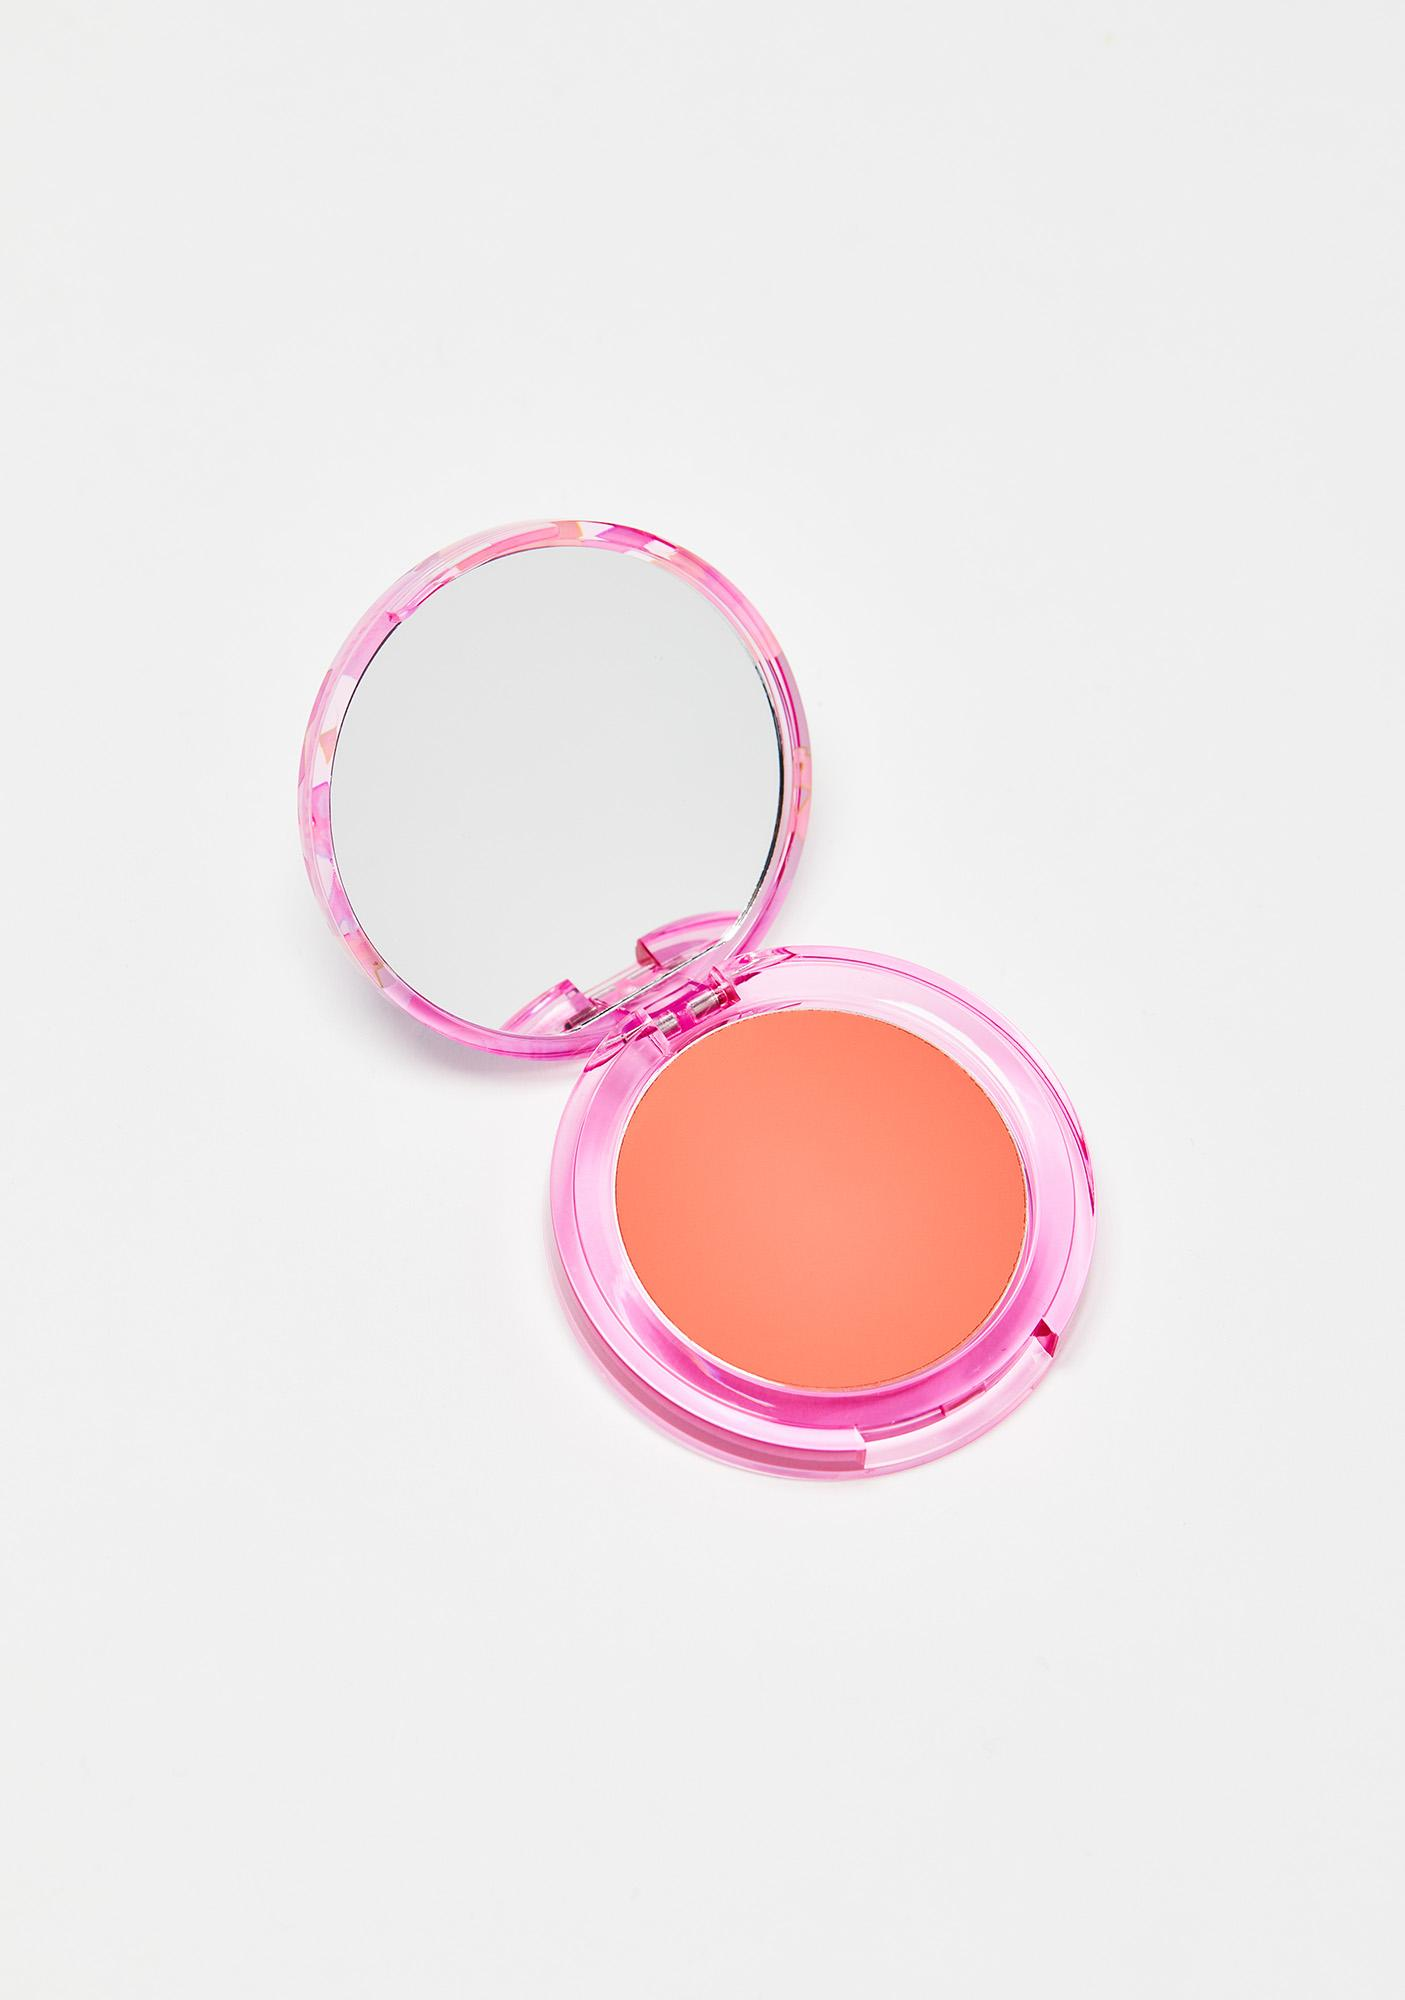 Lime Crime Hyperlink Glow Softwear Blush